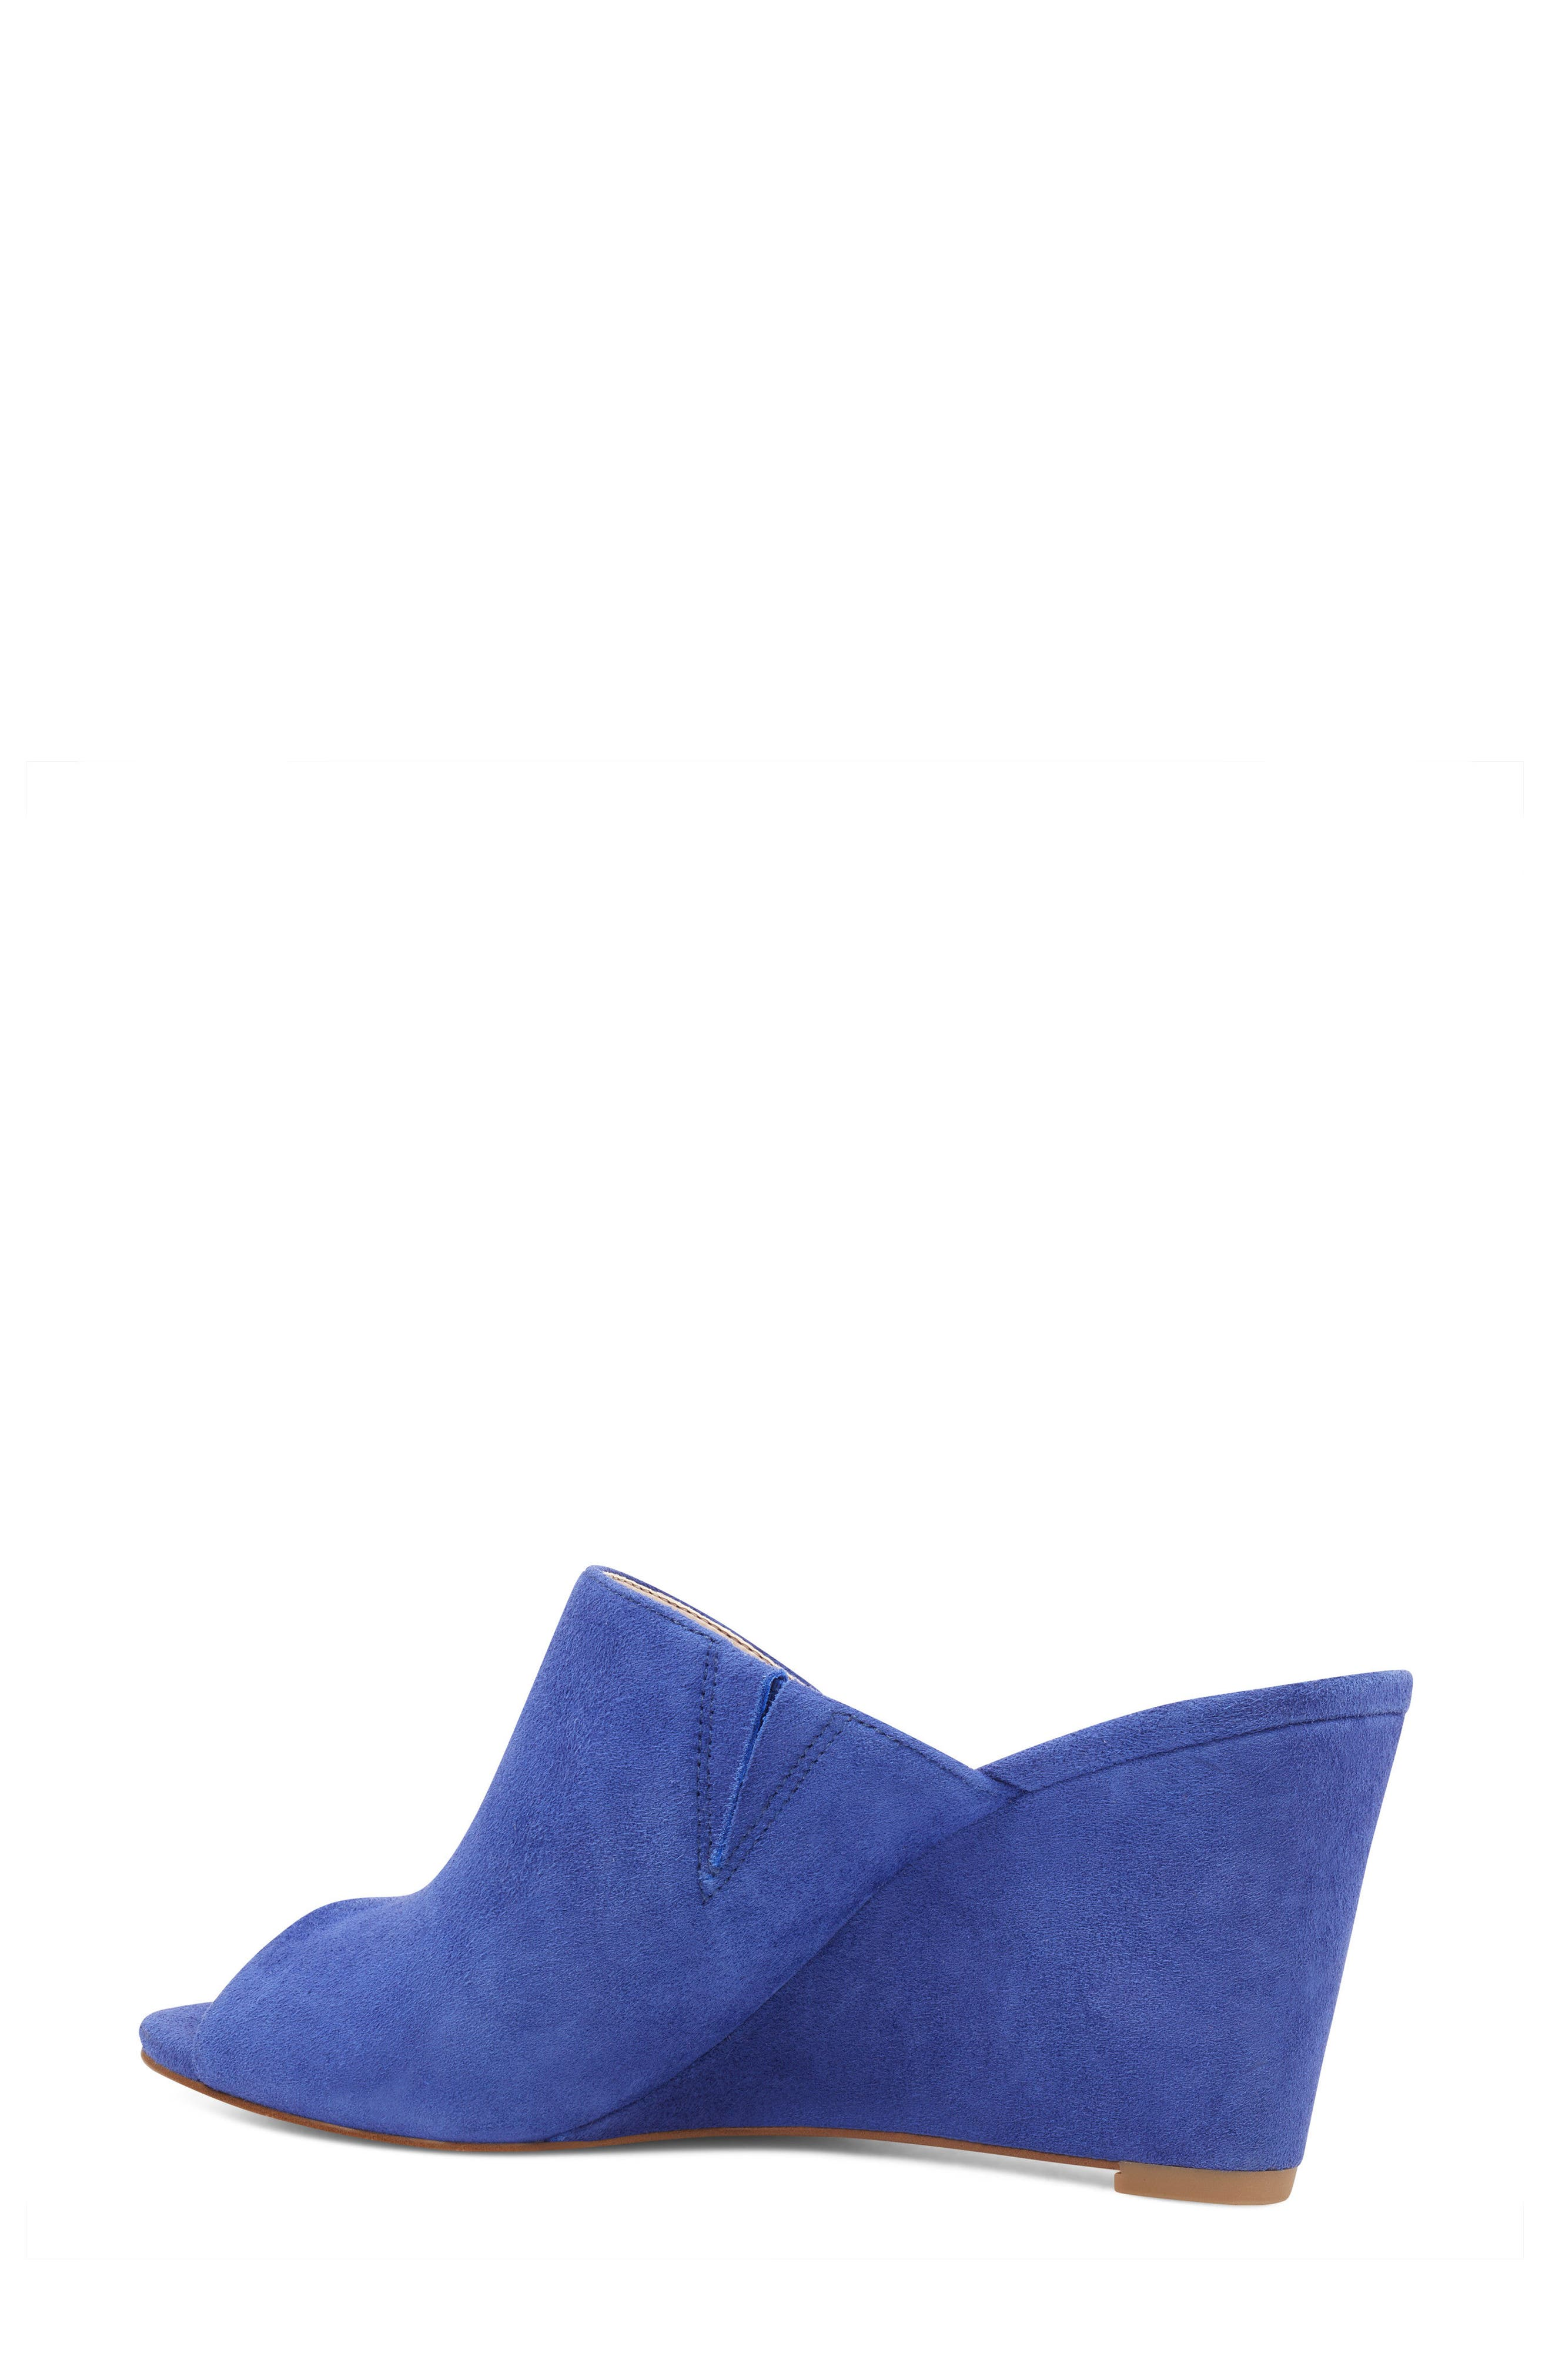 Janissah Wedge,                             Alternate thumbnail 2, color,                             DARK BLUE SUEDE